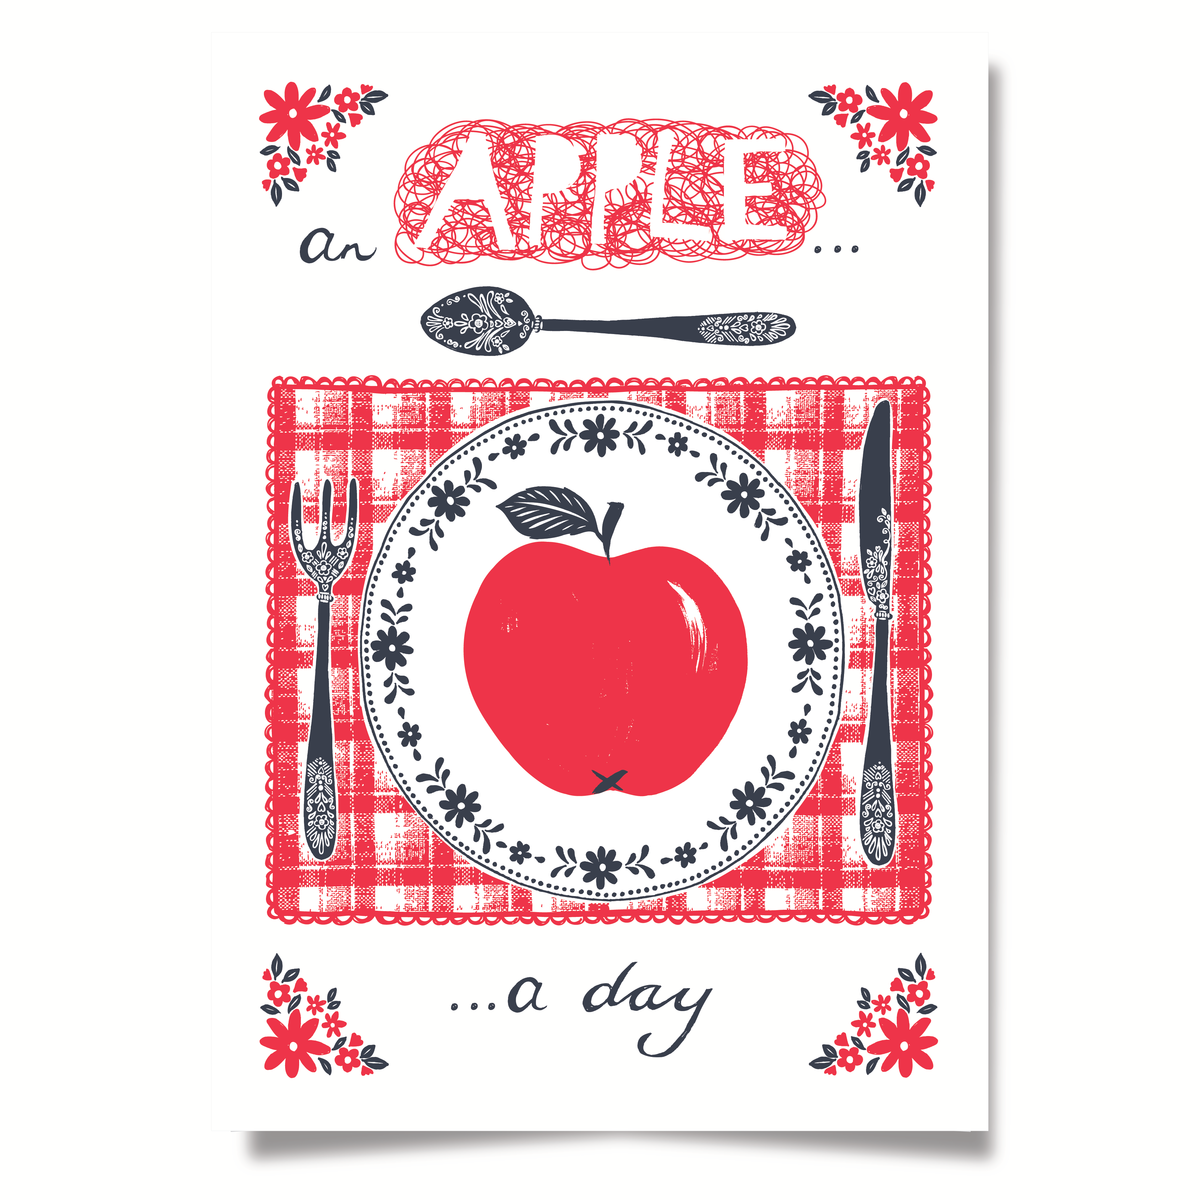 An Apple a Day by Beetroot Press